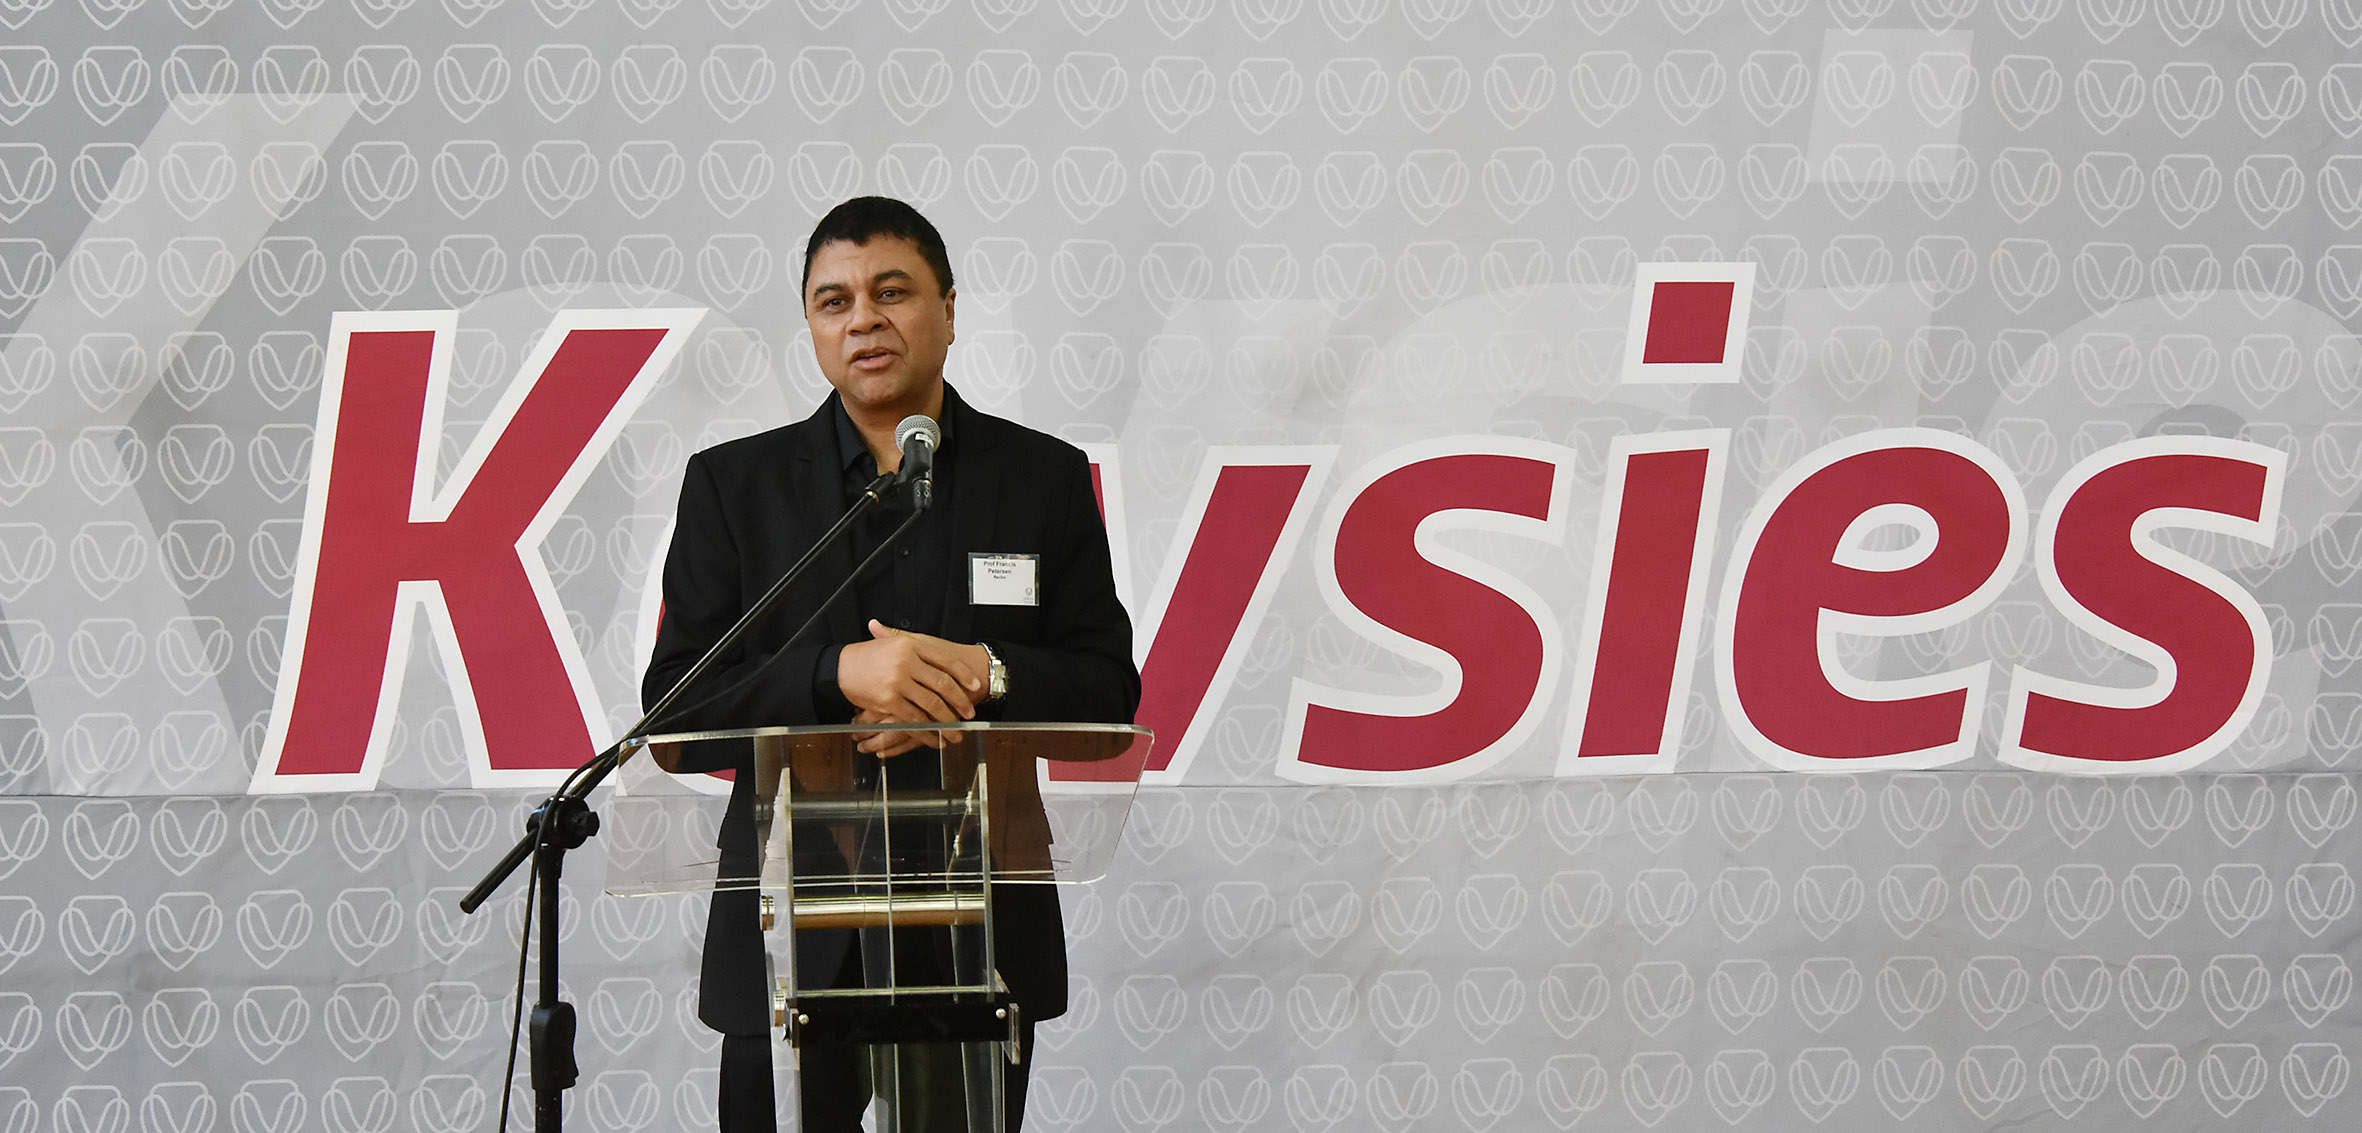 Prof Francis Petersen, UFS Rector and Vice-Chancellor